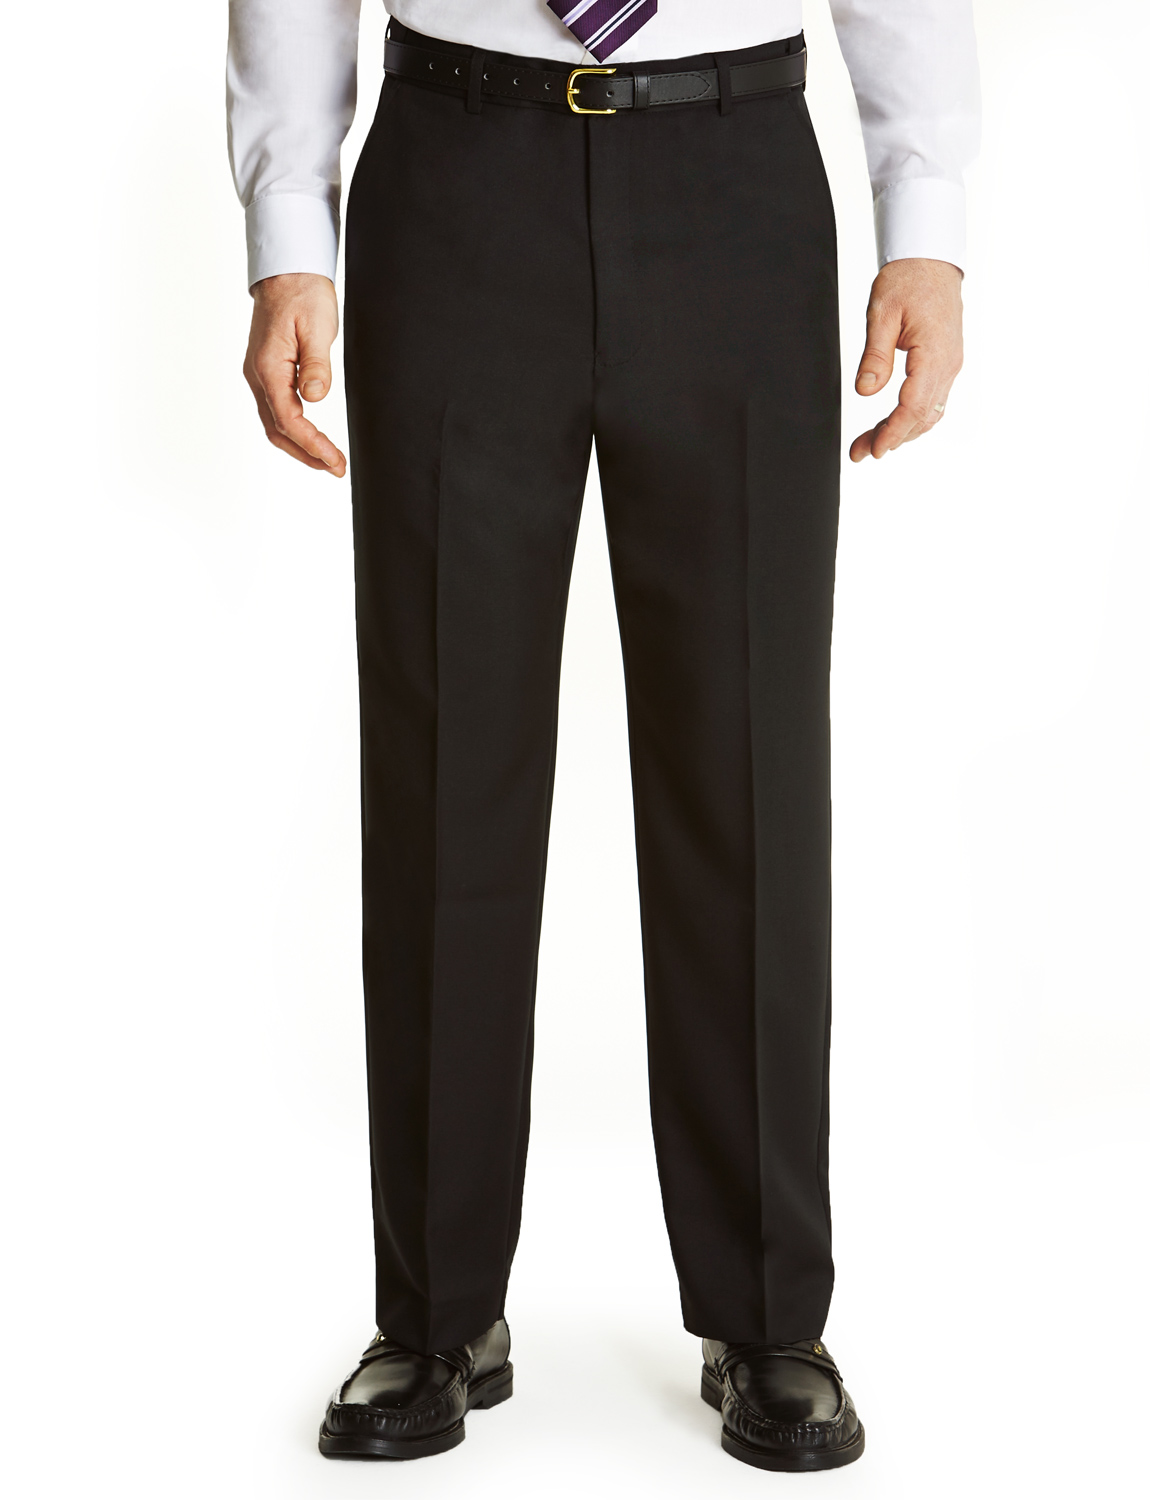 Mens-Farah-Flex-Trouser-Pants-With-Self-Adjusting-Waistband thumbnail 3